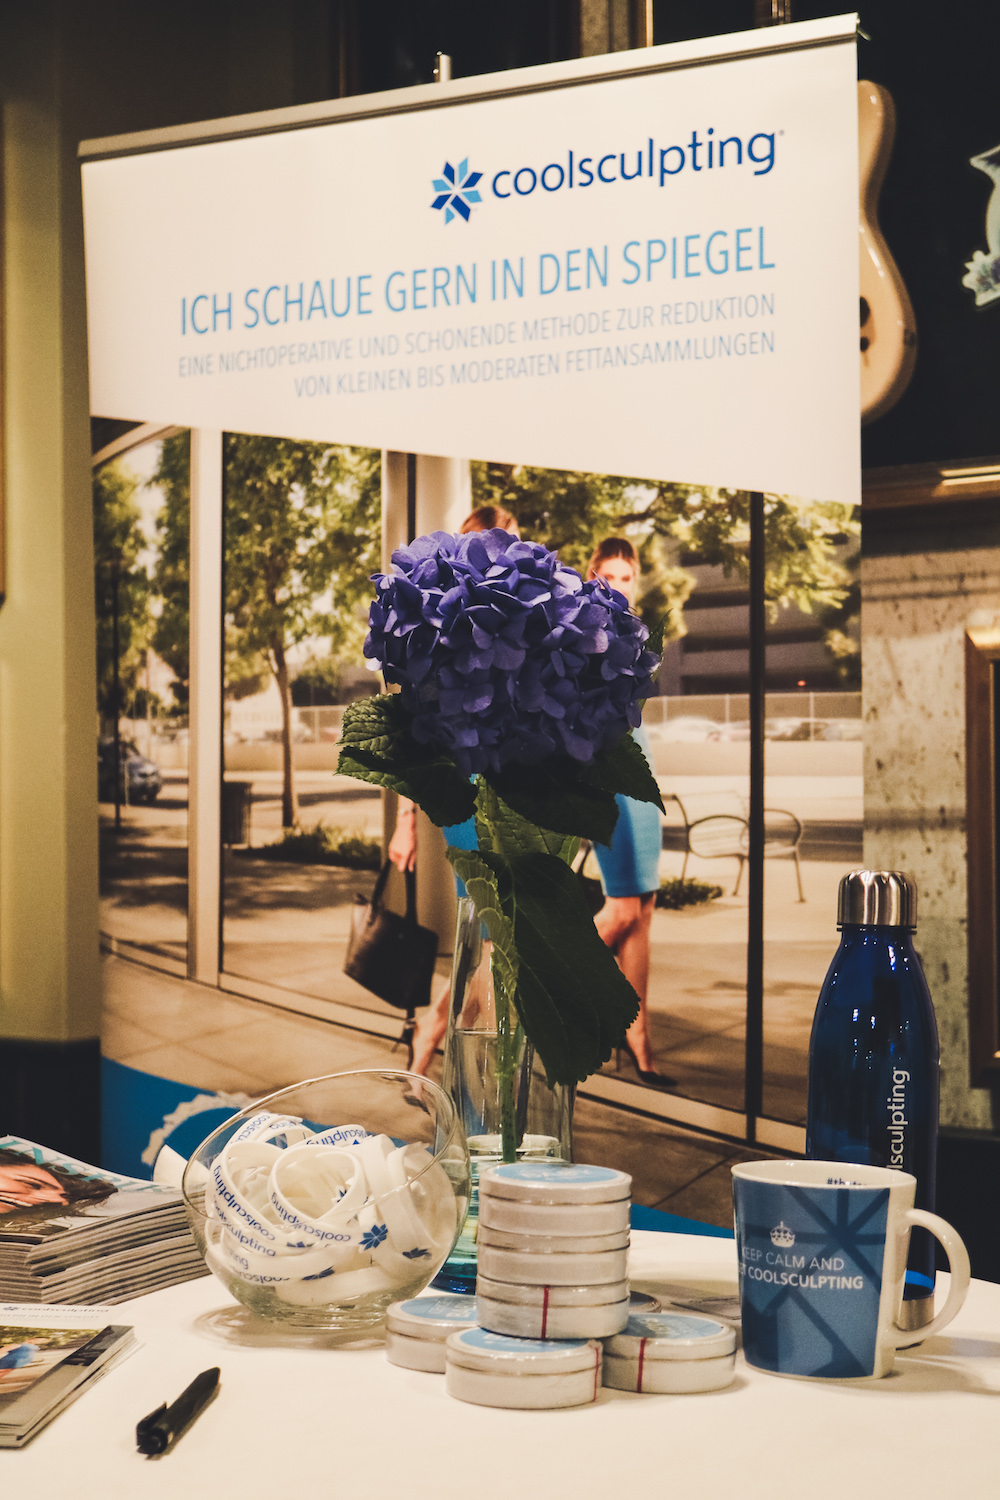 beautypress Blogger Event im Hard Rock Café Köln - Coolsculpting